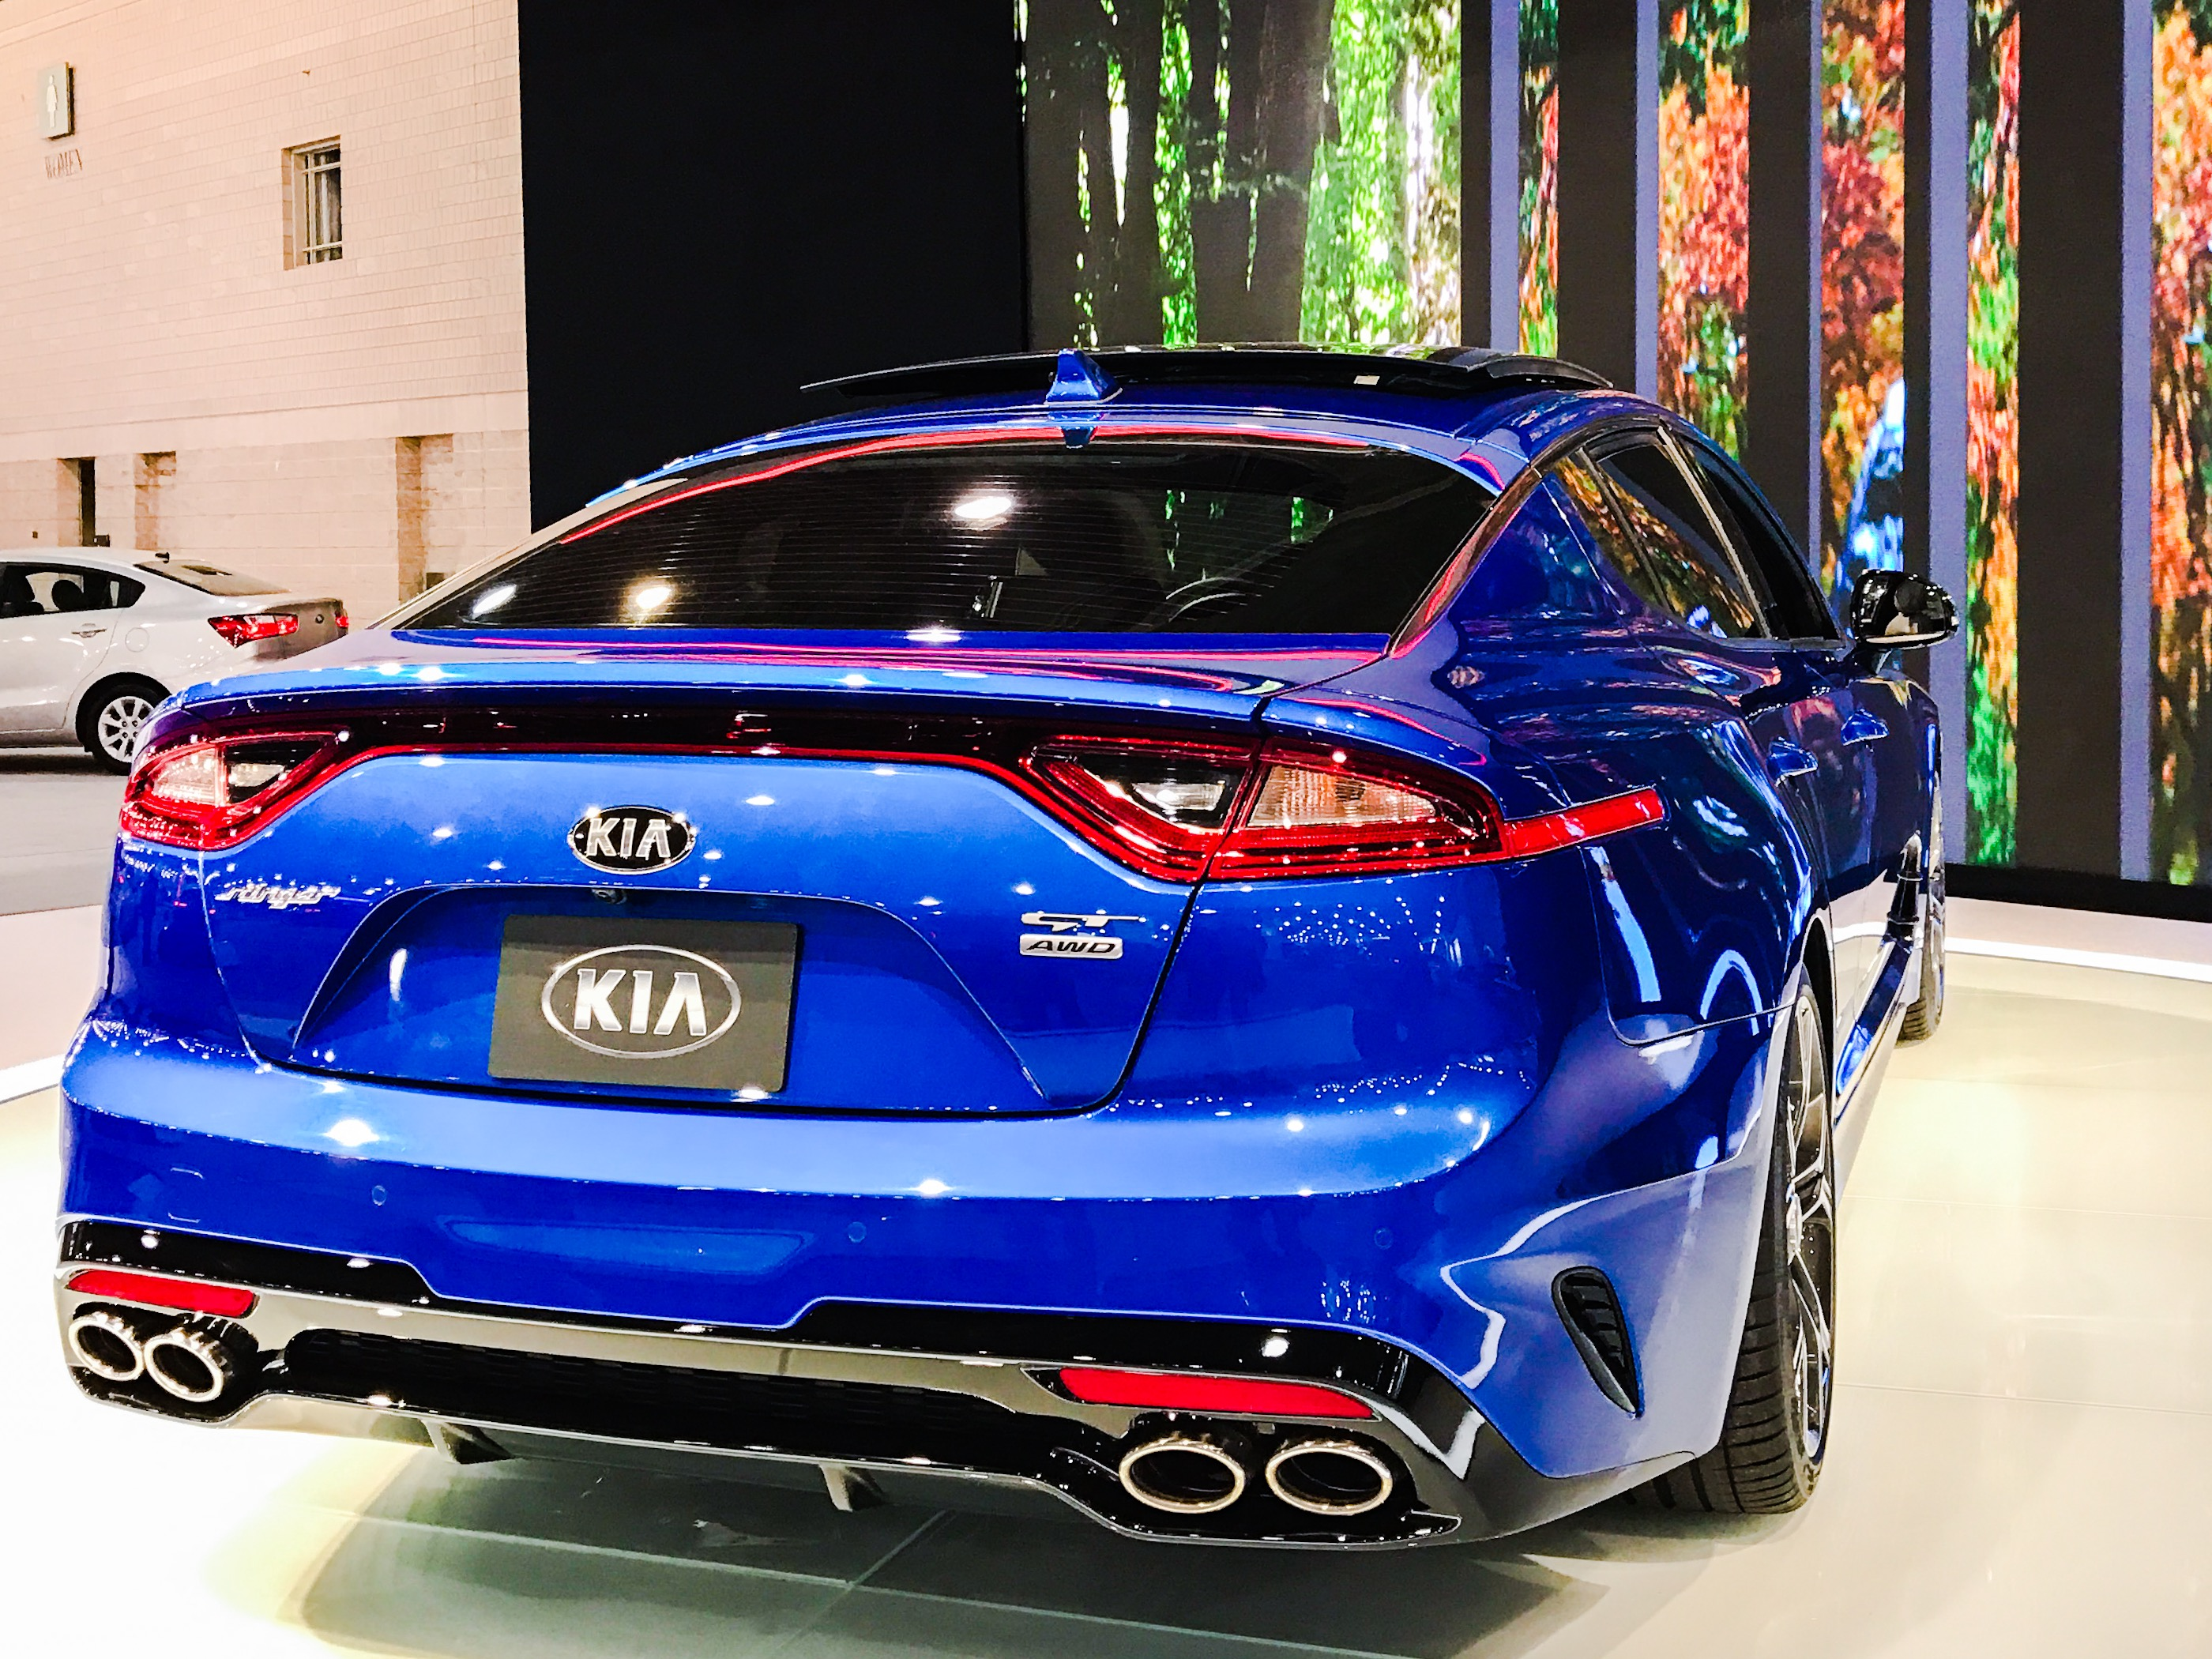 Join me in San Diego to discover #TheNewKia